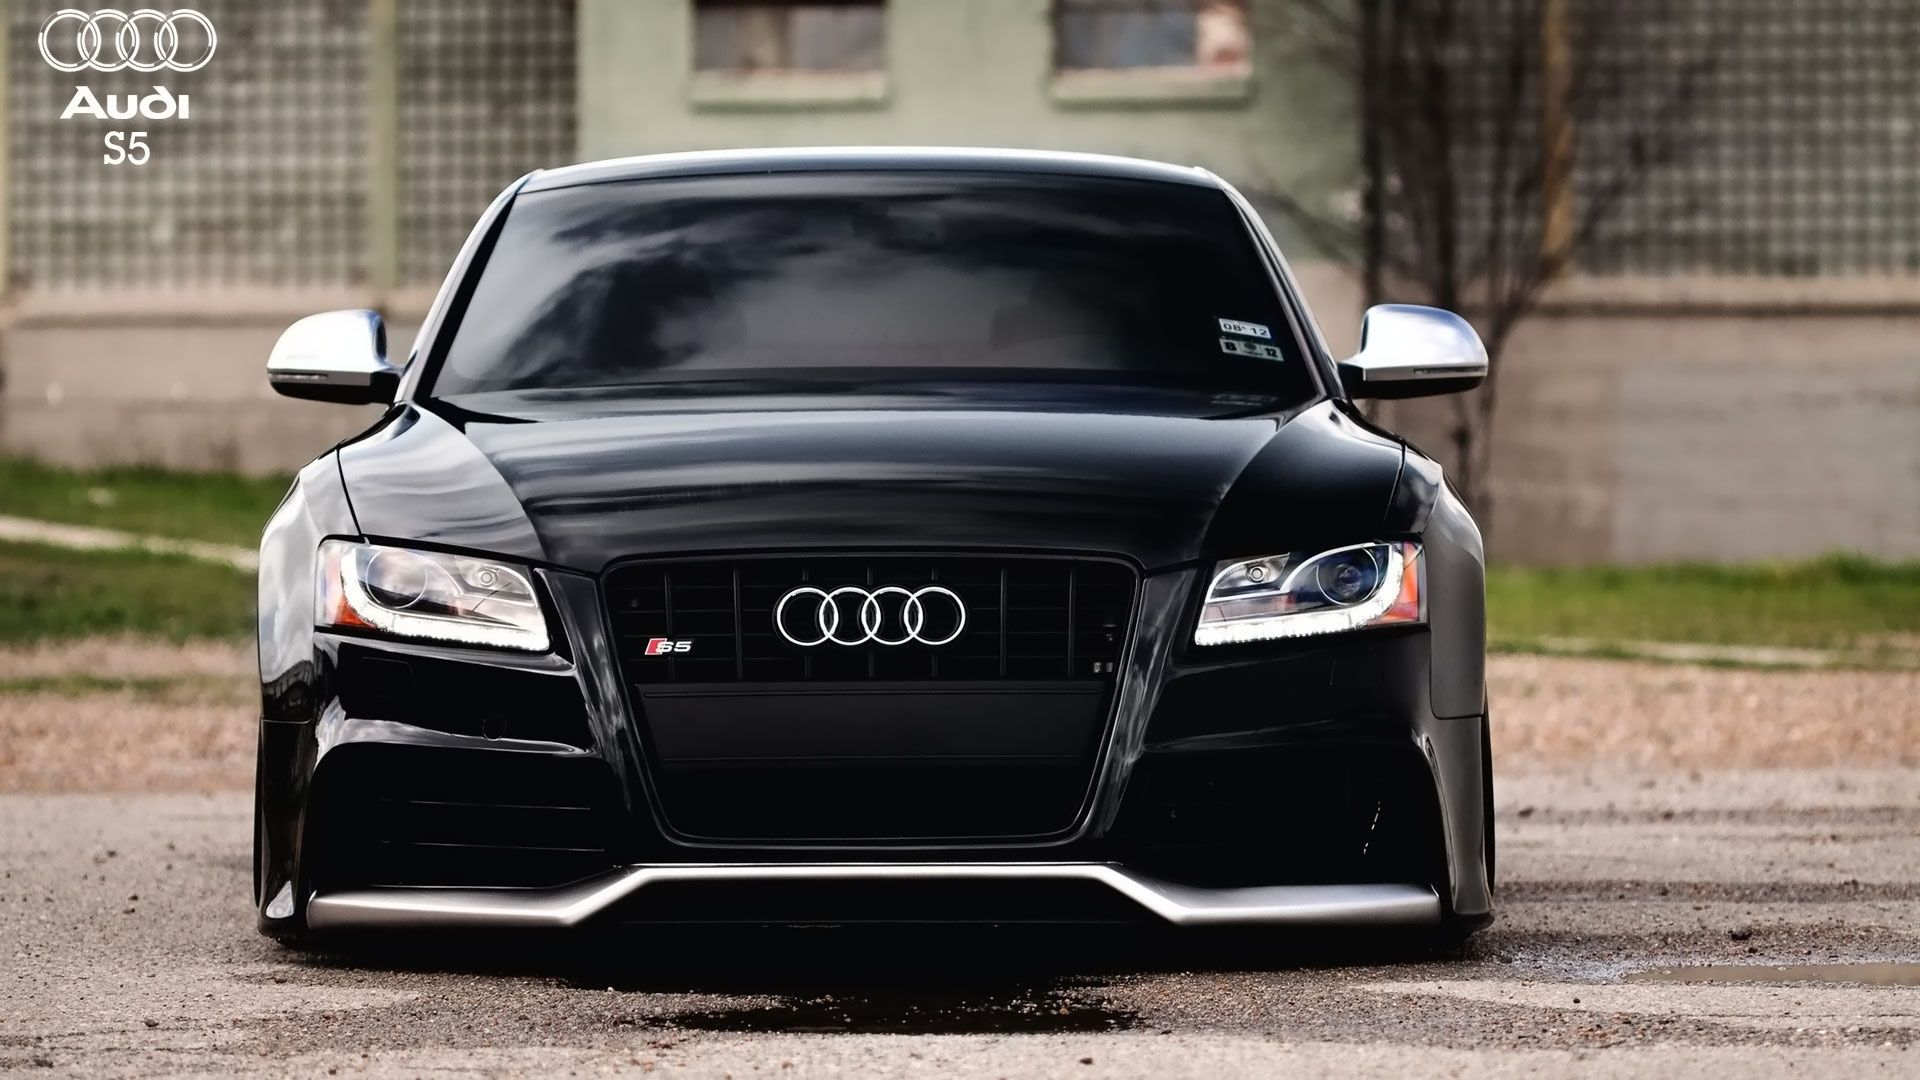 Audi Rs5 Tuned Wallpaper Hd Image 2010 Audi S5 Modified